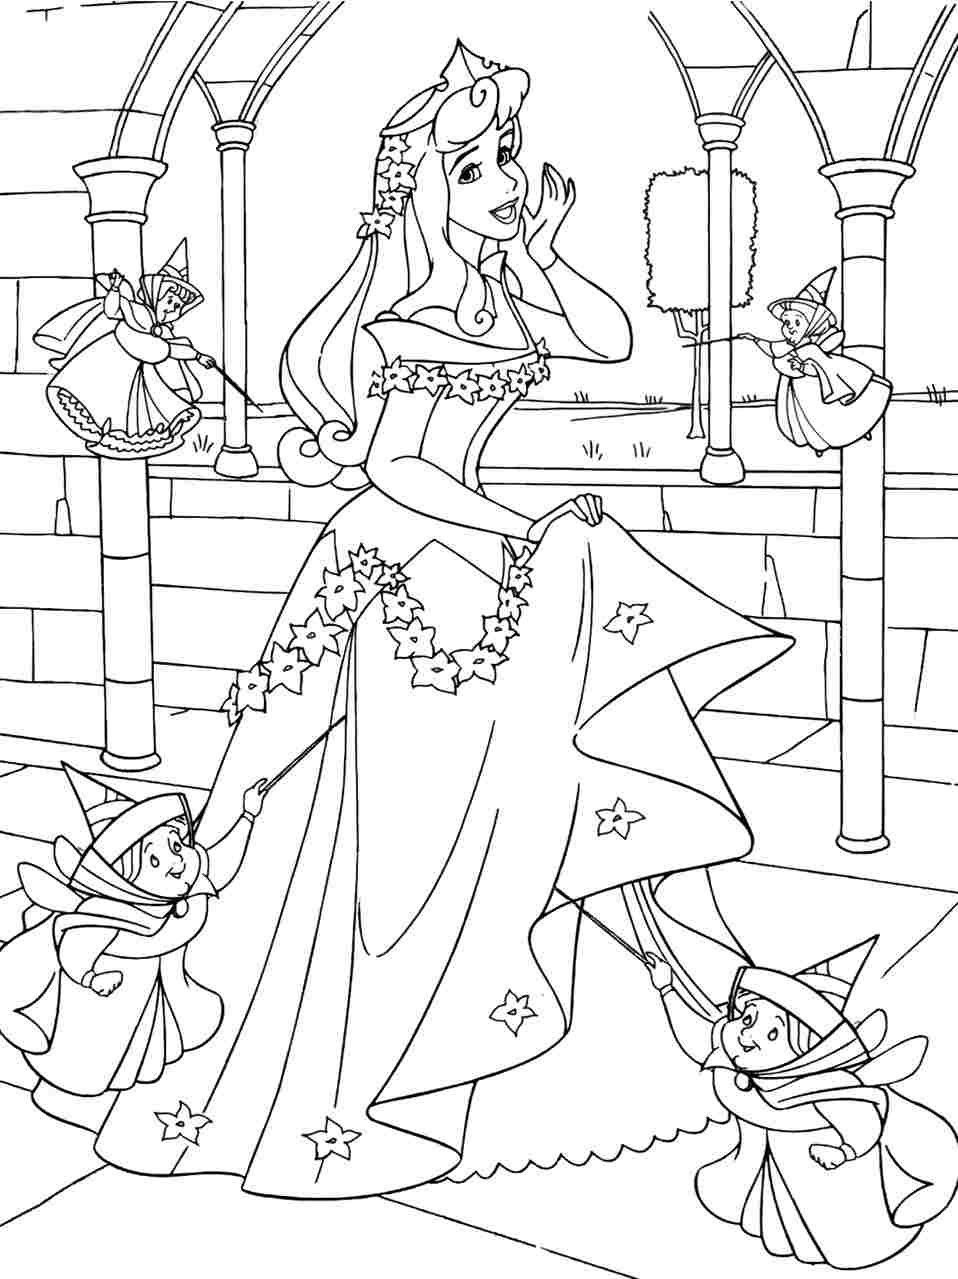 coloring printouts 10 toothy adult coloring pages printable off the cusp printouts coloring